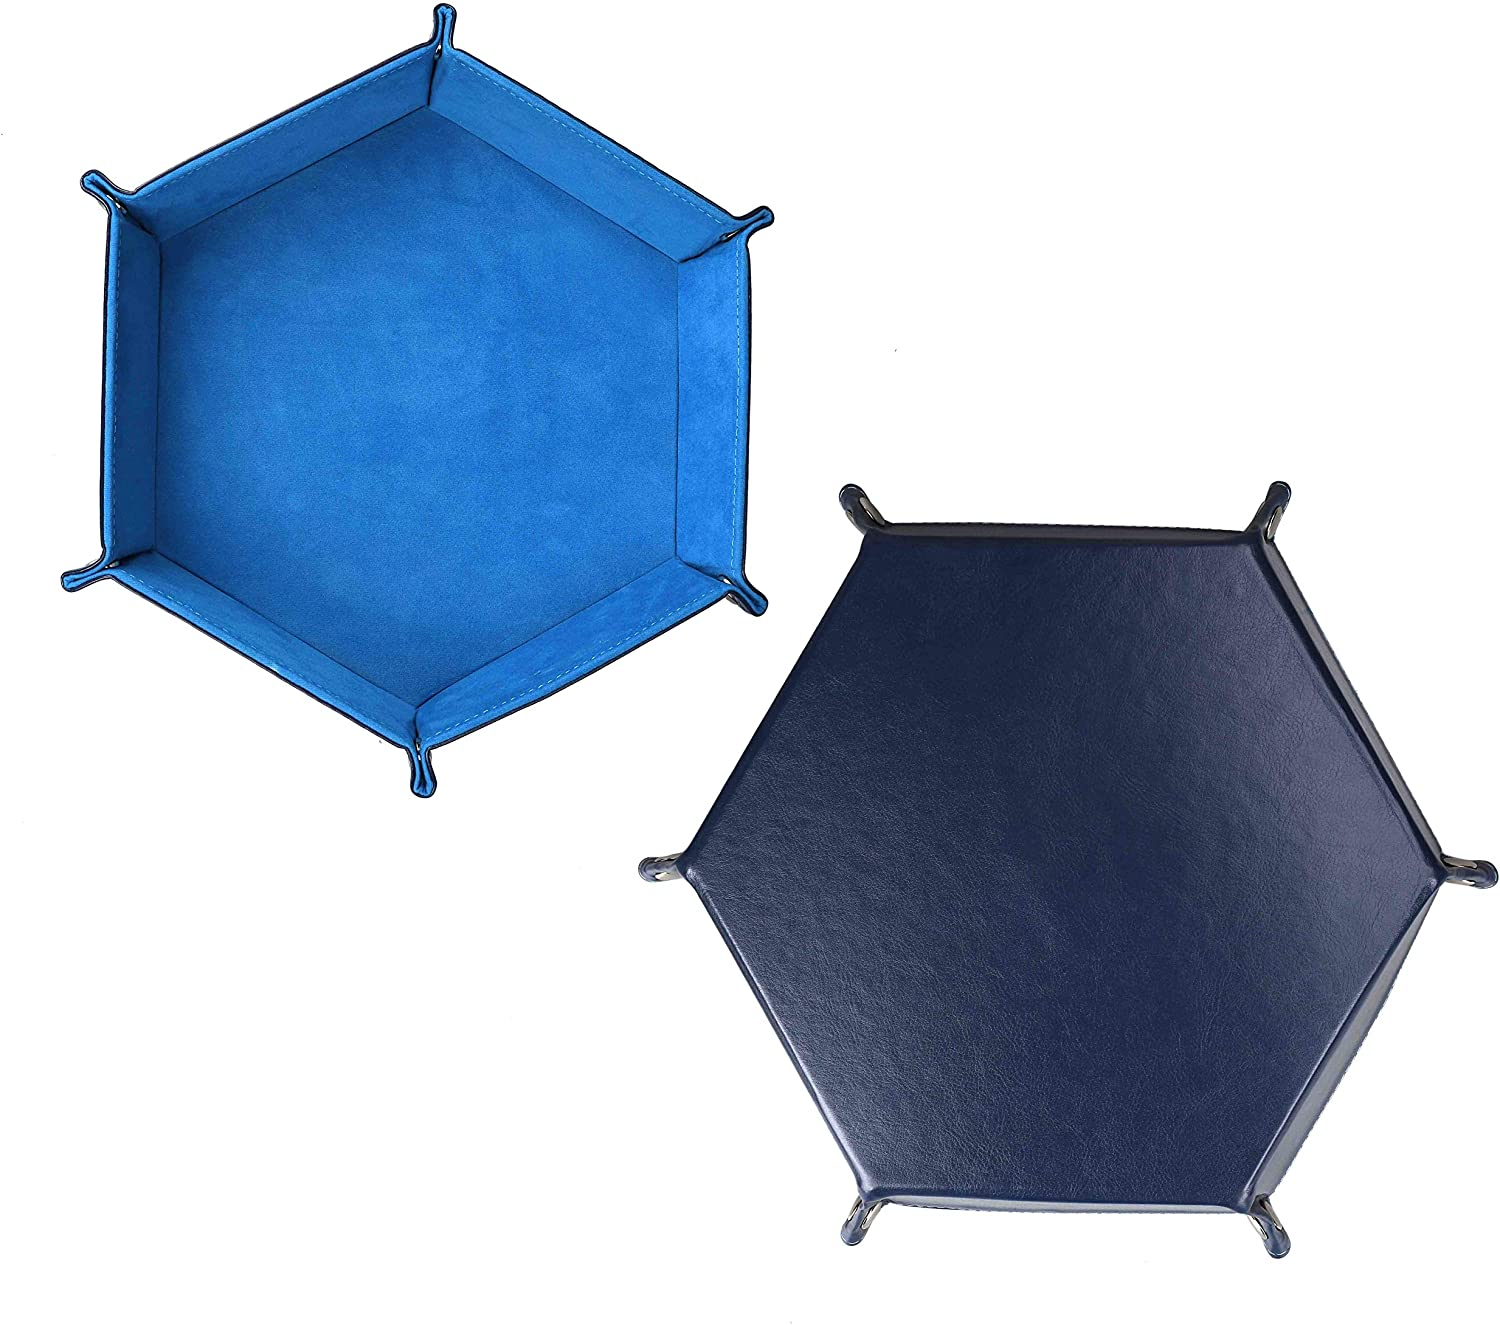 Dice Tray Dices Rolling Holder Velvet PU Leather Folding Snap Storage Box Hexagon for Jewelry, Coin, RPG, DND and Other Table Games, Blue